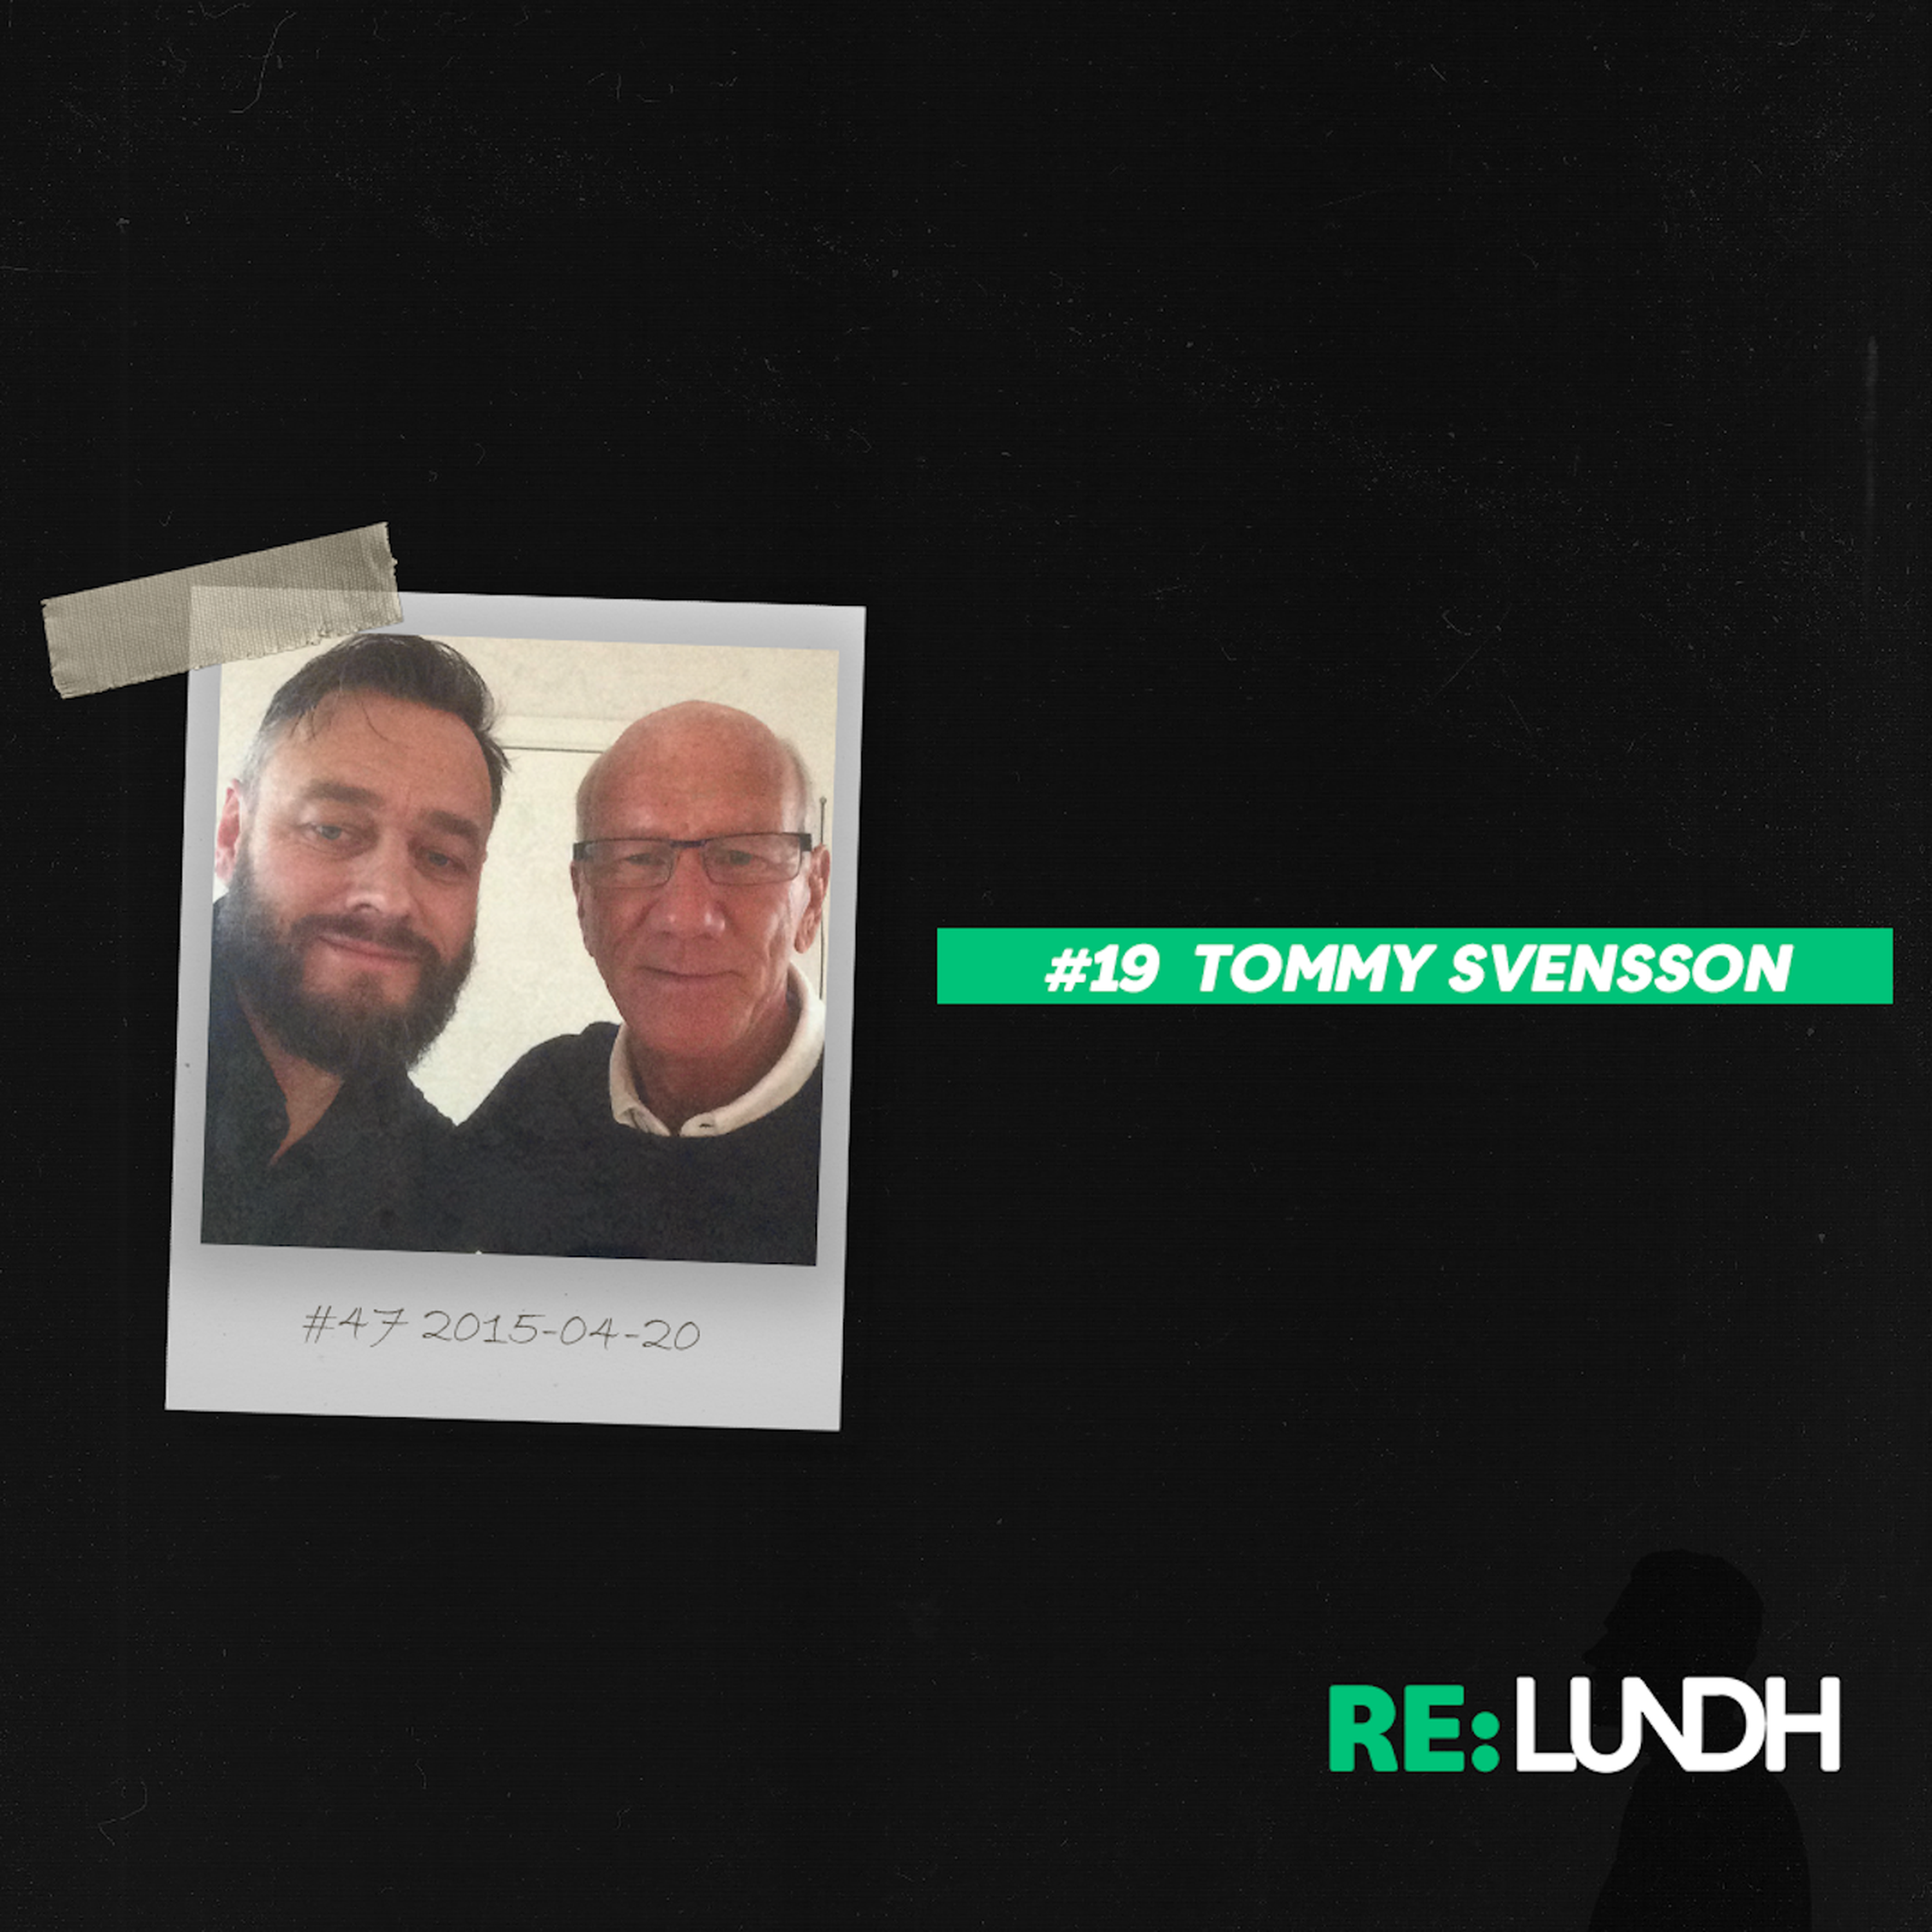 19 Re:Lundh - Tommy Svensson